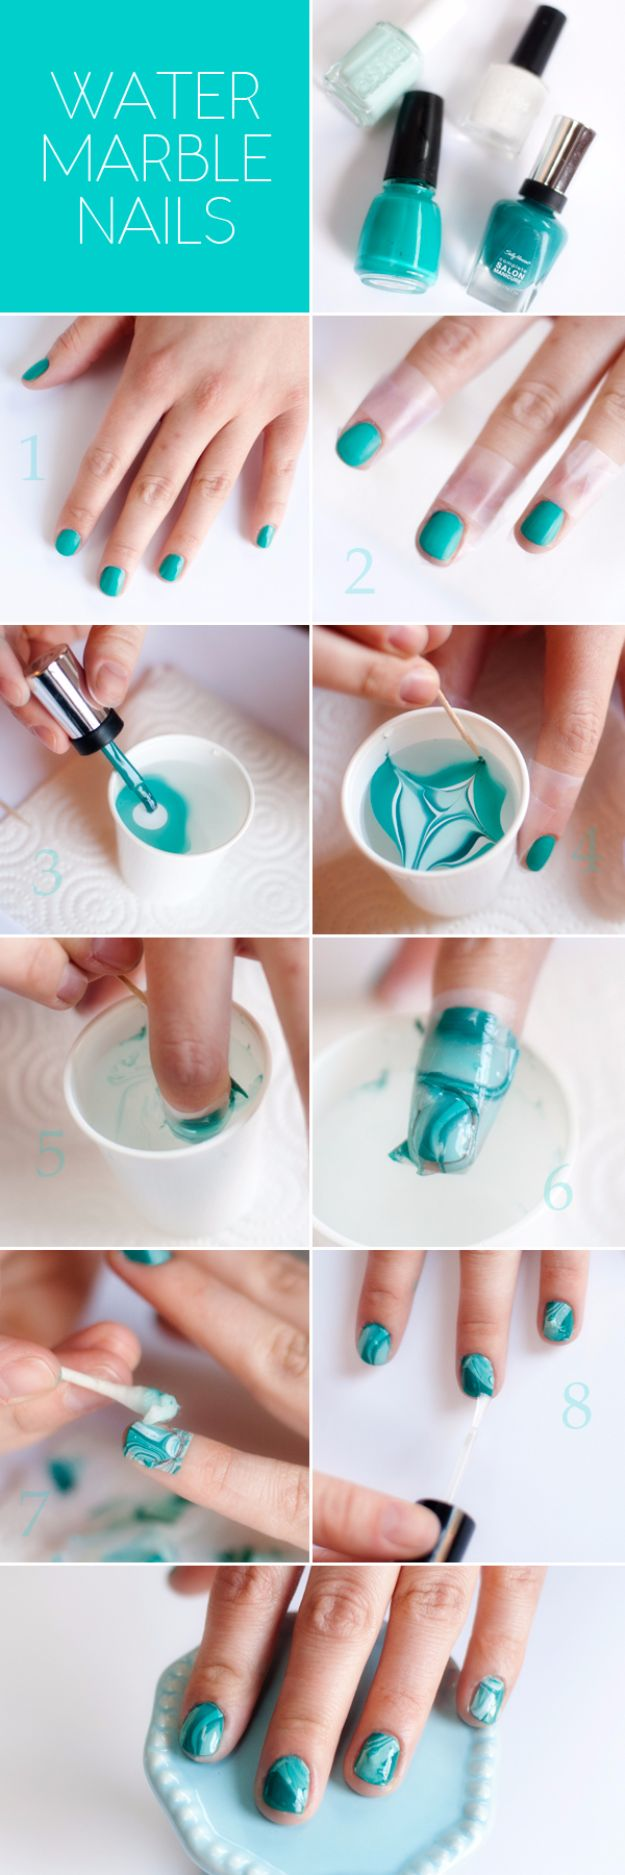 35 Genius Ideas that Will Change the Ways You Paint Your Nails